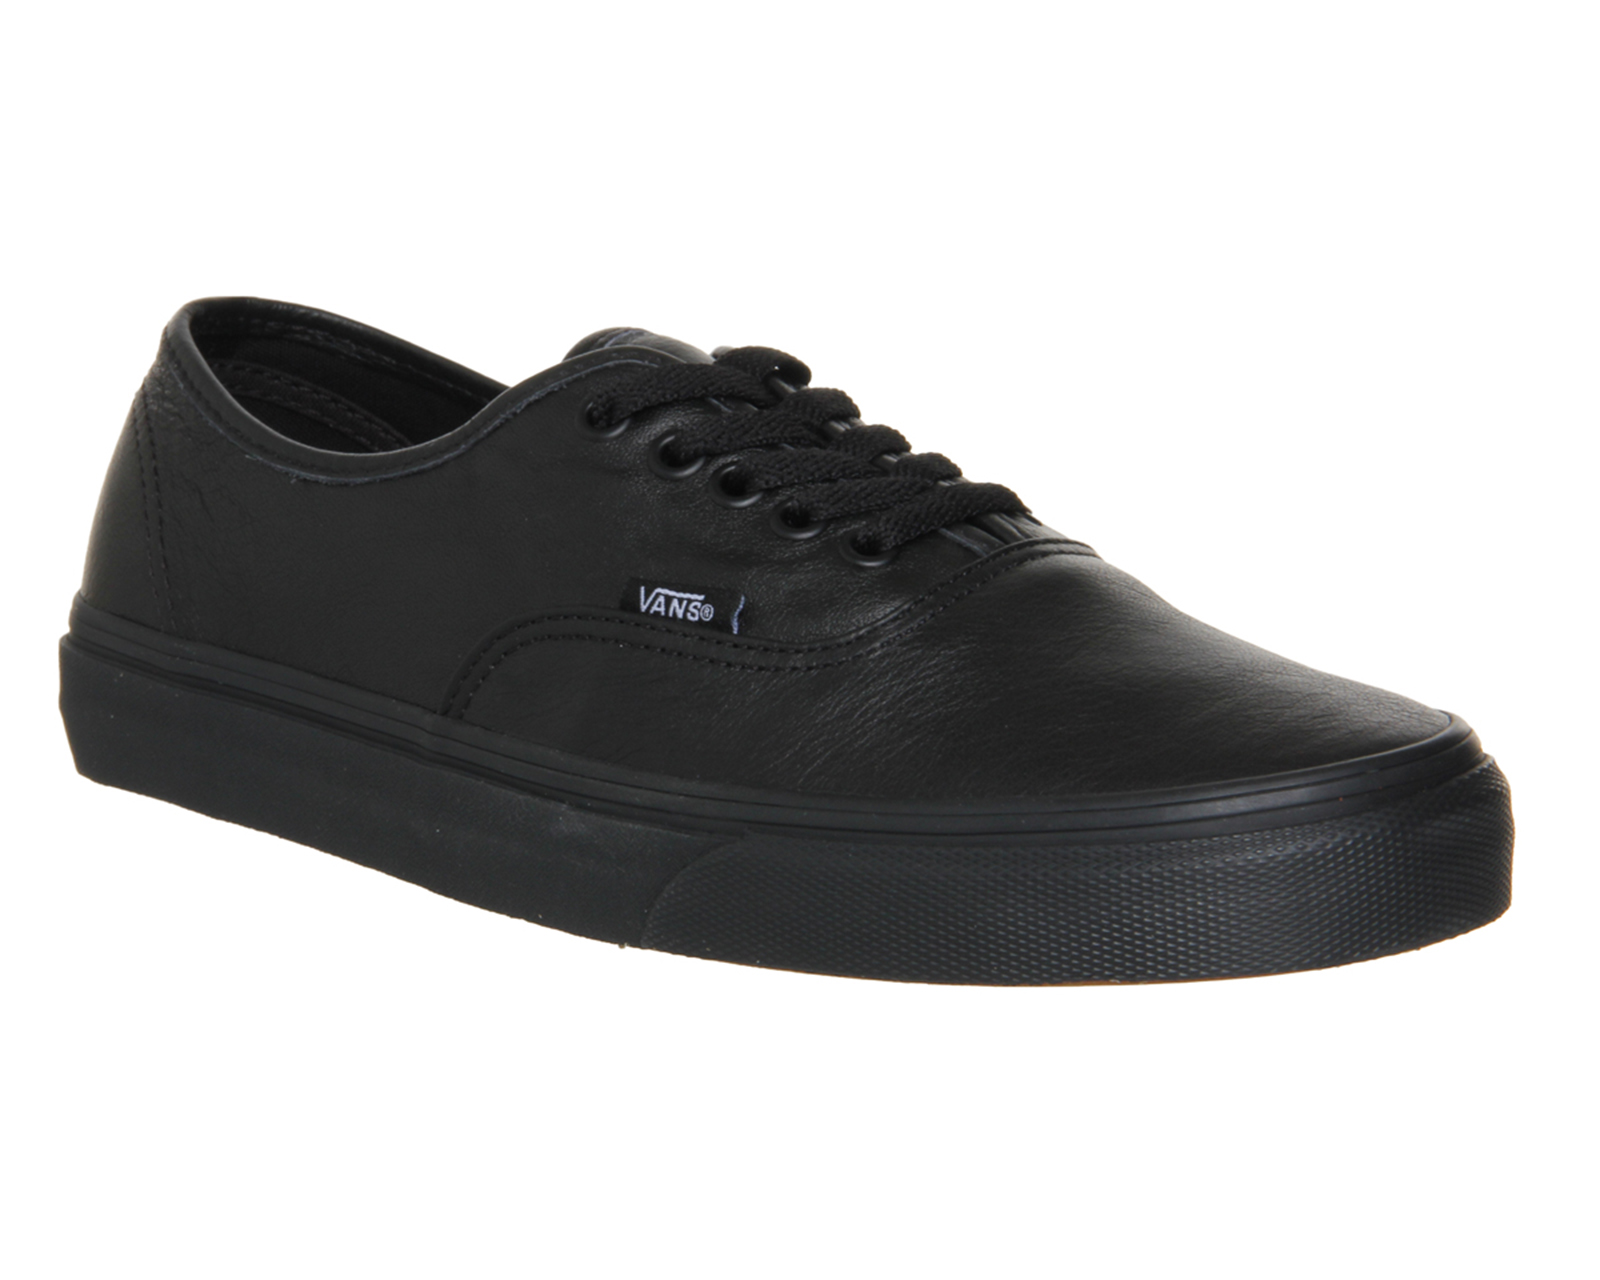 2f2ca475ffbc Sentinel Mens Vans Authentic Leather Black Mono Trainers Shoes